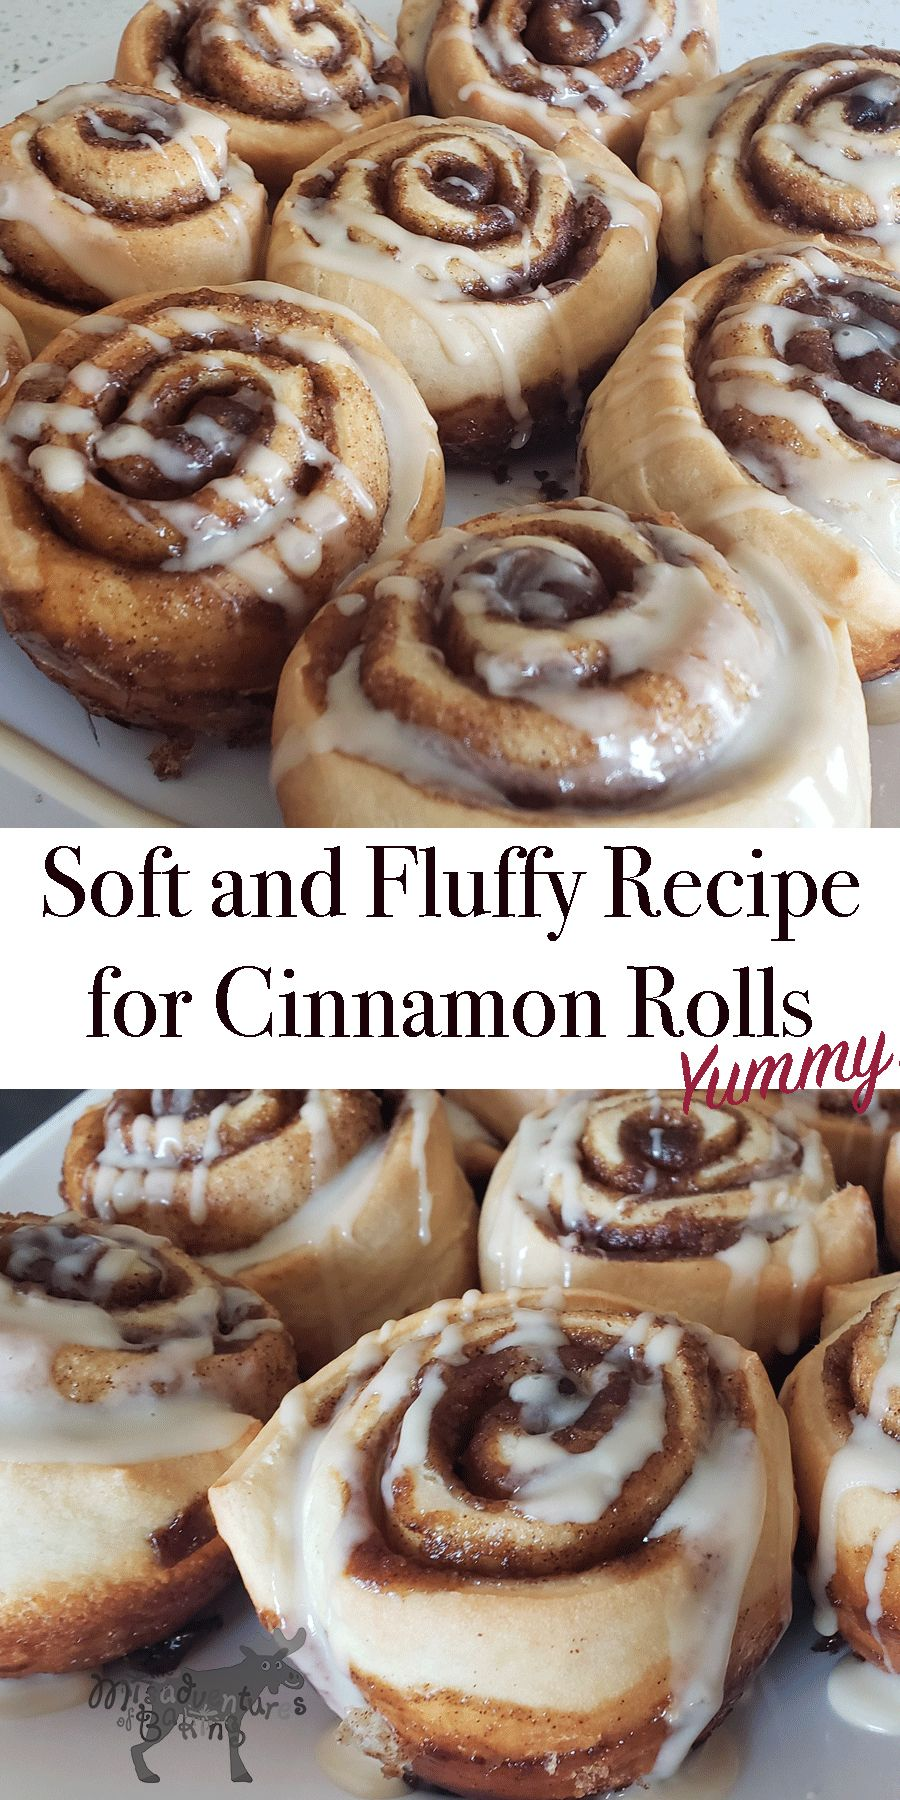 Photo of Easy, Homemade Soft and Fluffy Cinnamon Rolls